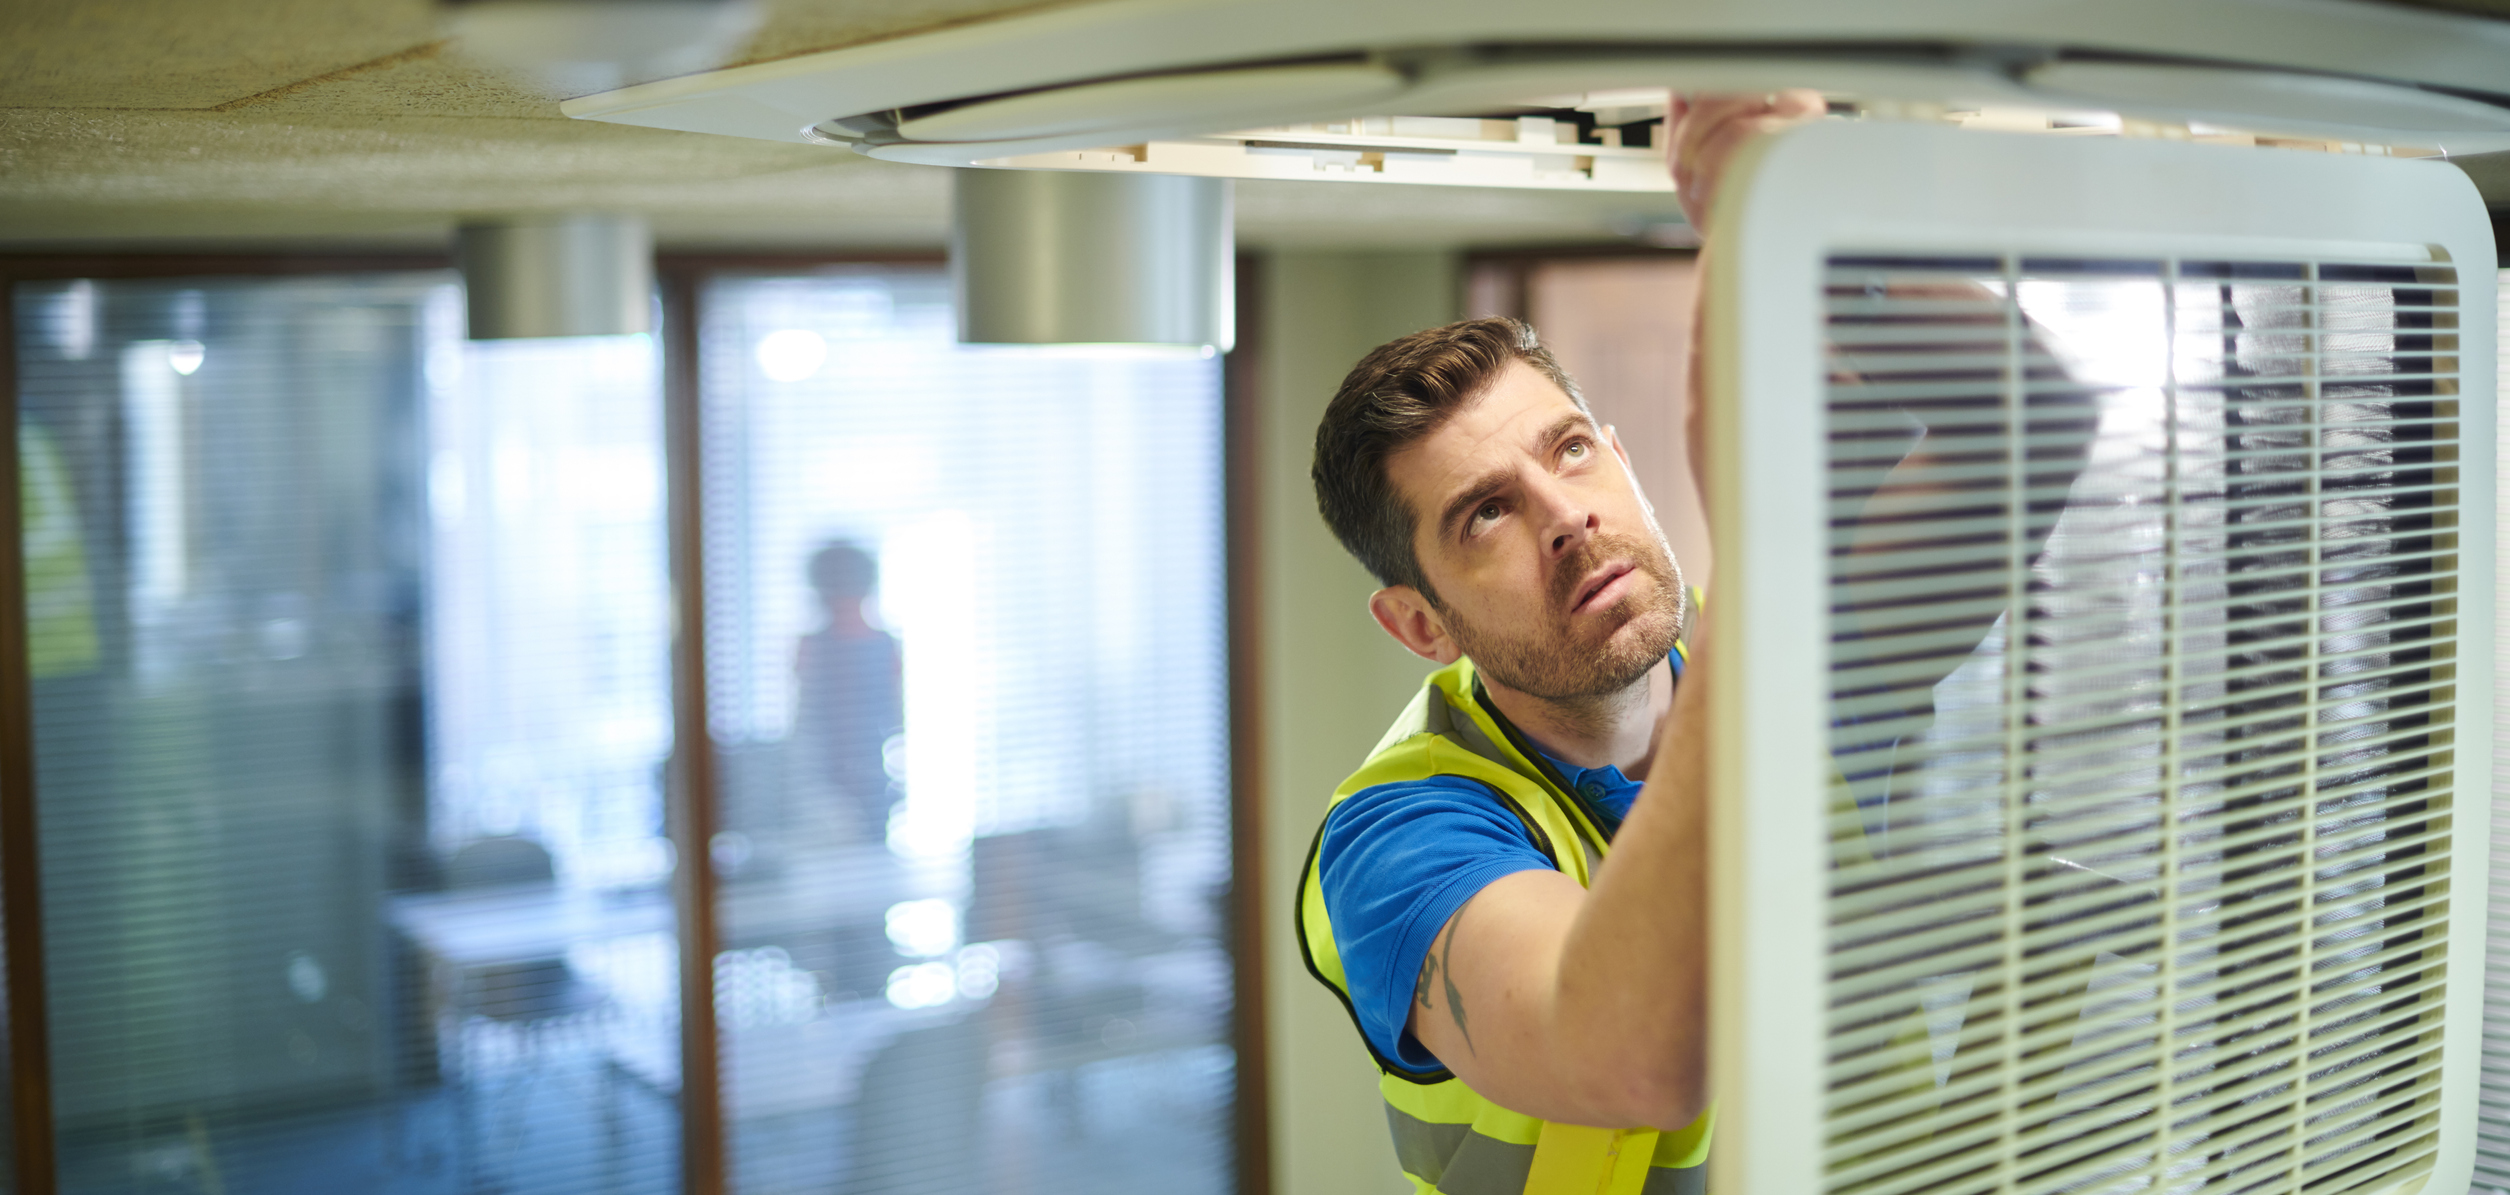 HVAC Contractor Fixing HVAC System